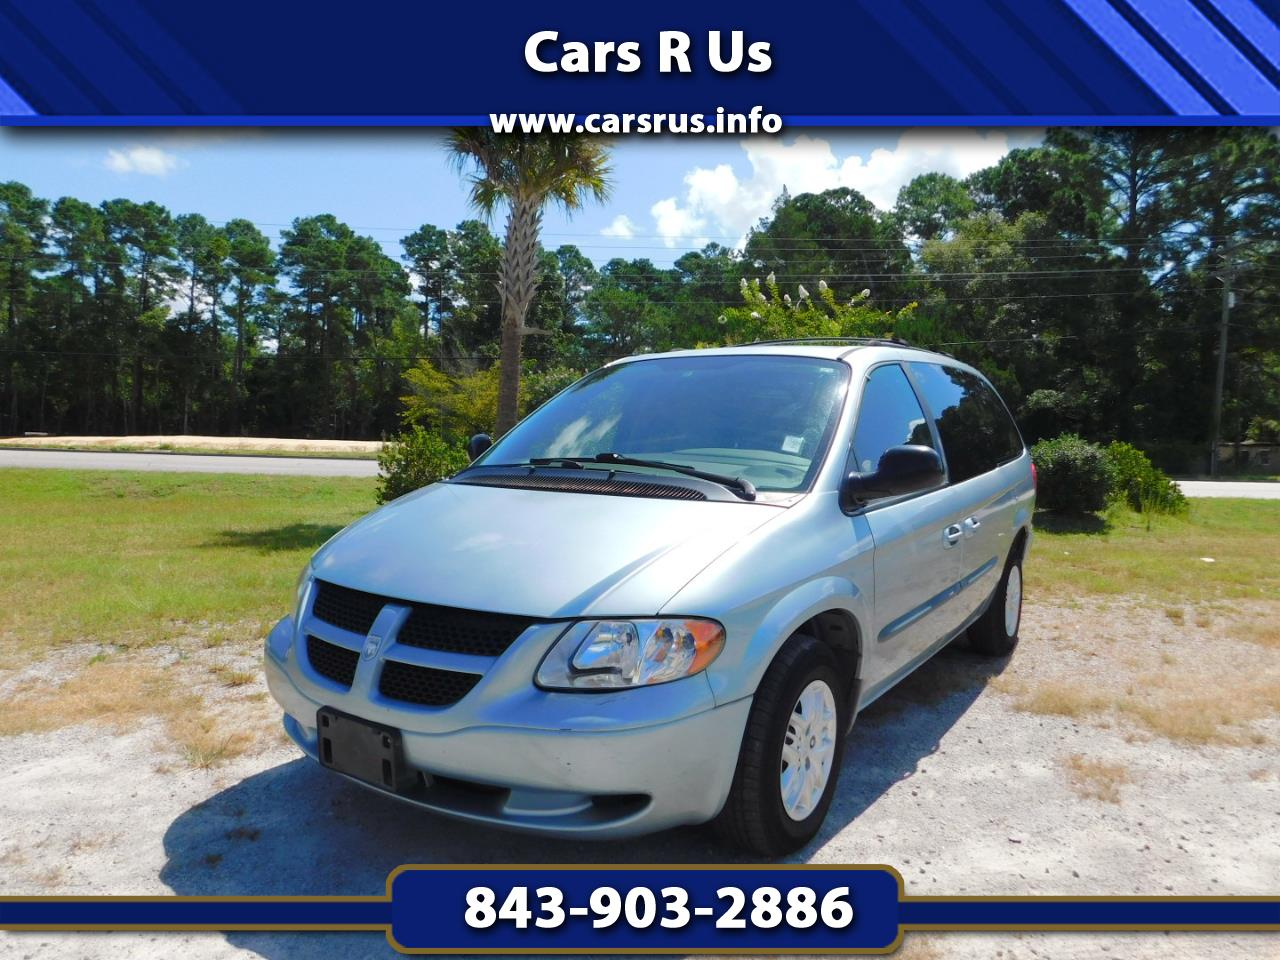 used 2003 dodge grand caravan sport fwd for sale in myrtle beach sc 29588 cars r us used 2003 dodge grand caravan sport fwd